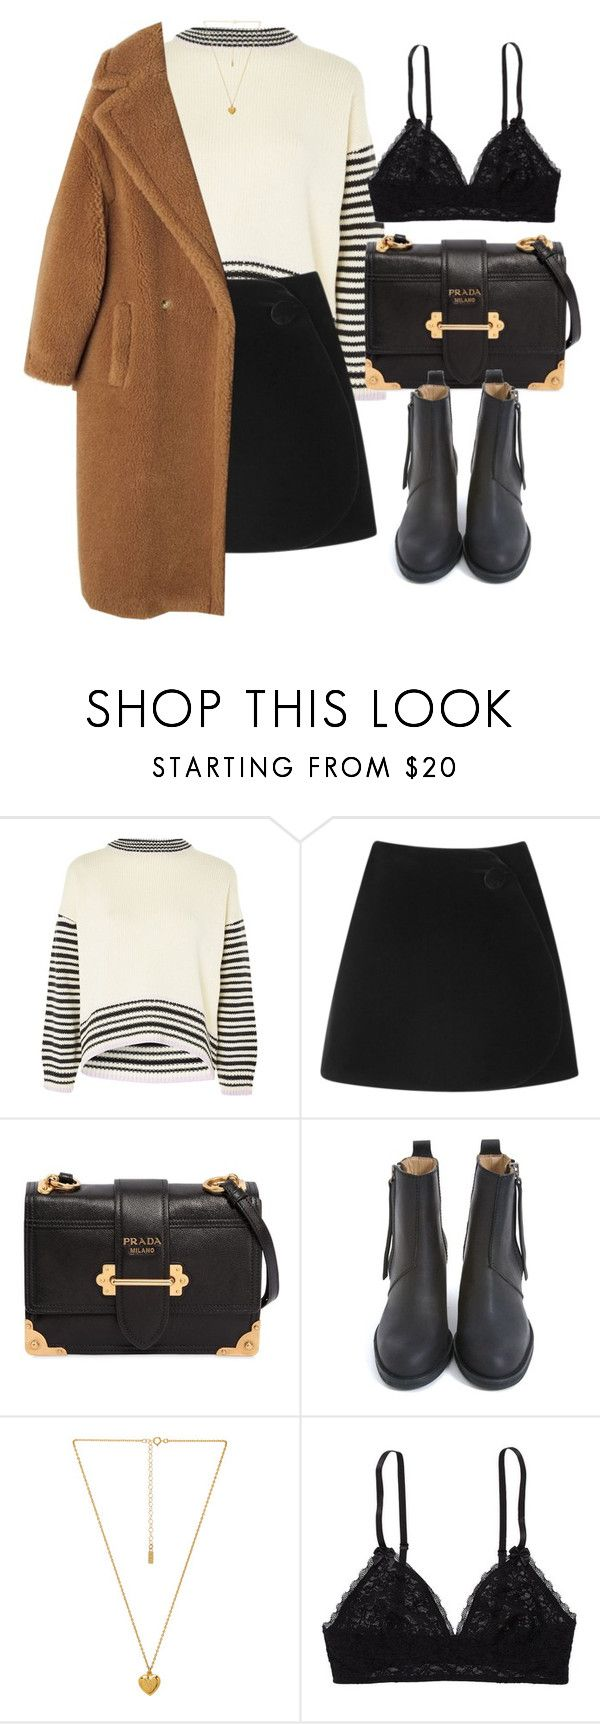 """Untitled #7135"" by laurenmboot ❤ liked on Polyvore featuring Topshop, Simone Rocha, Prada, Acne Studios, Natalie B and Aerie"